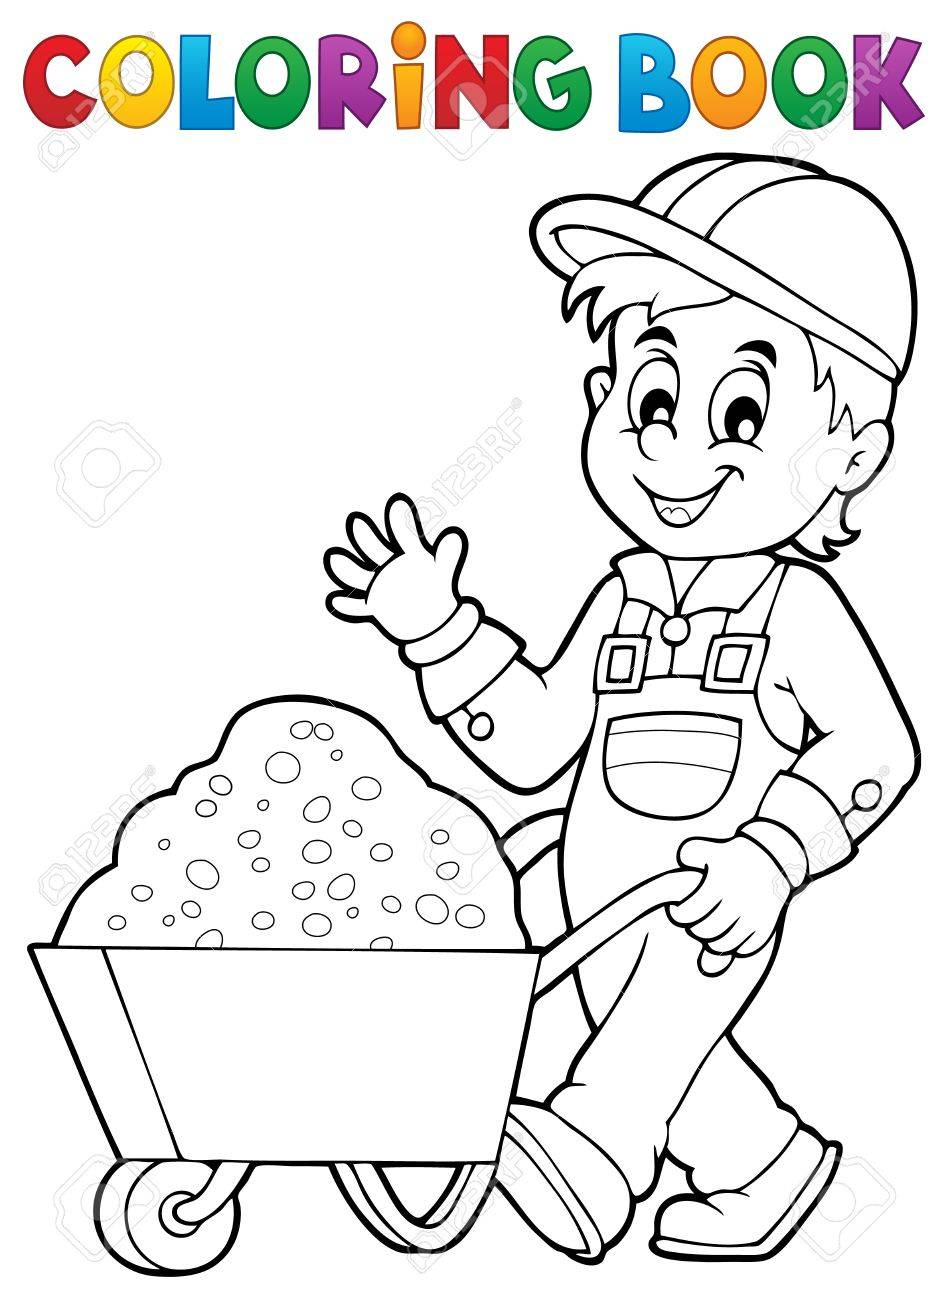 Coloring Book Construction Worker 1 - Vector Illustration. Royalty ...